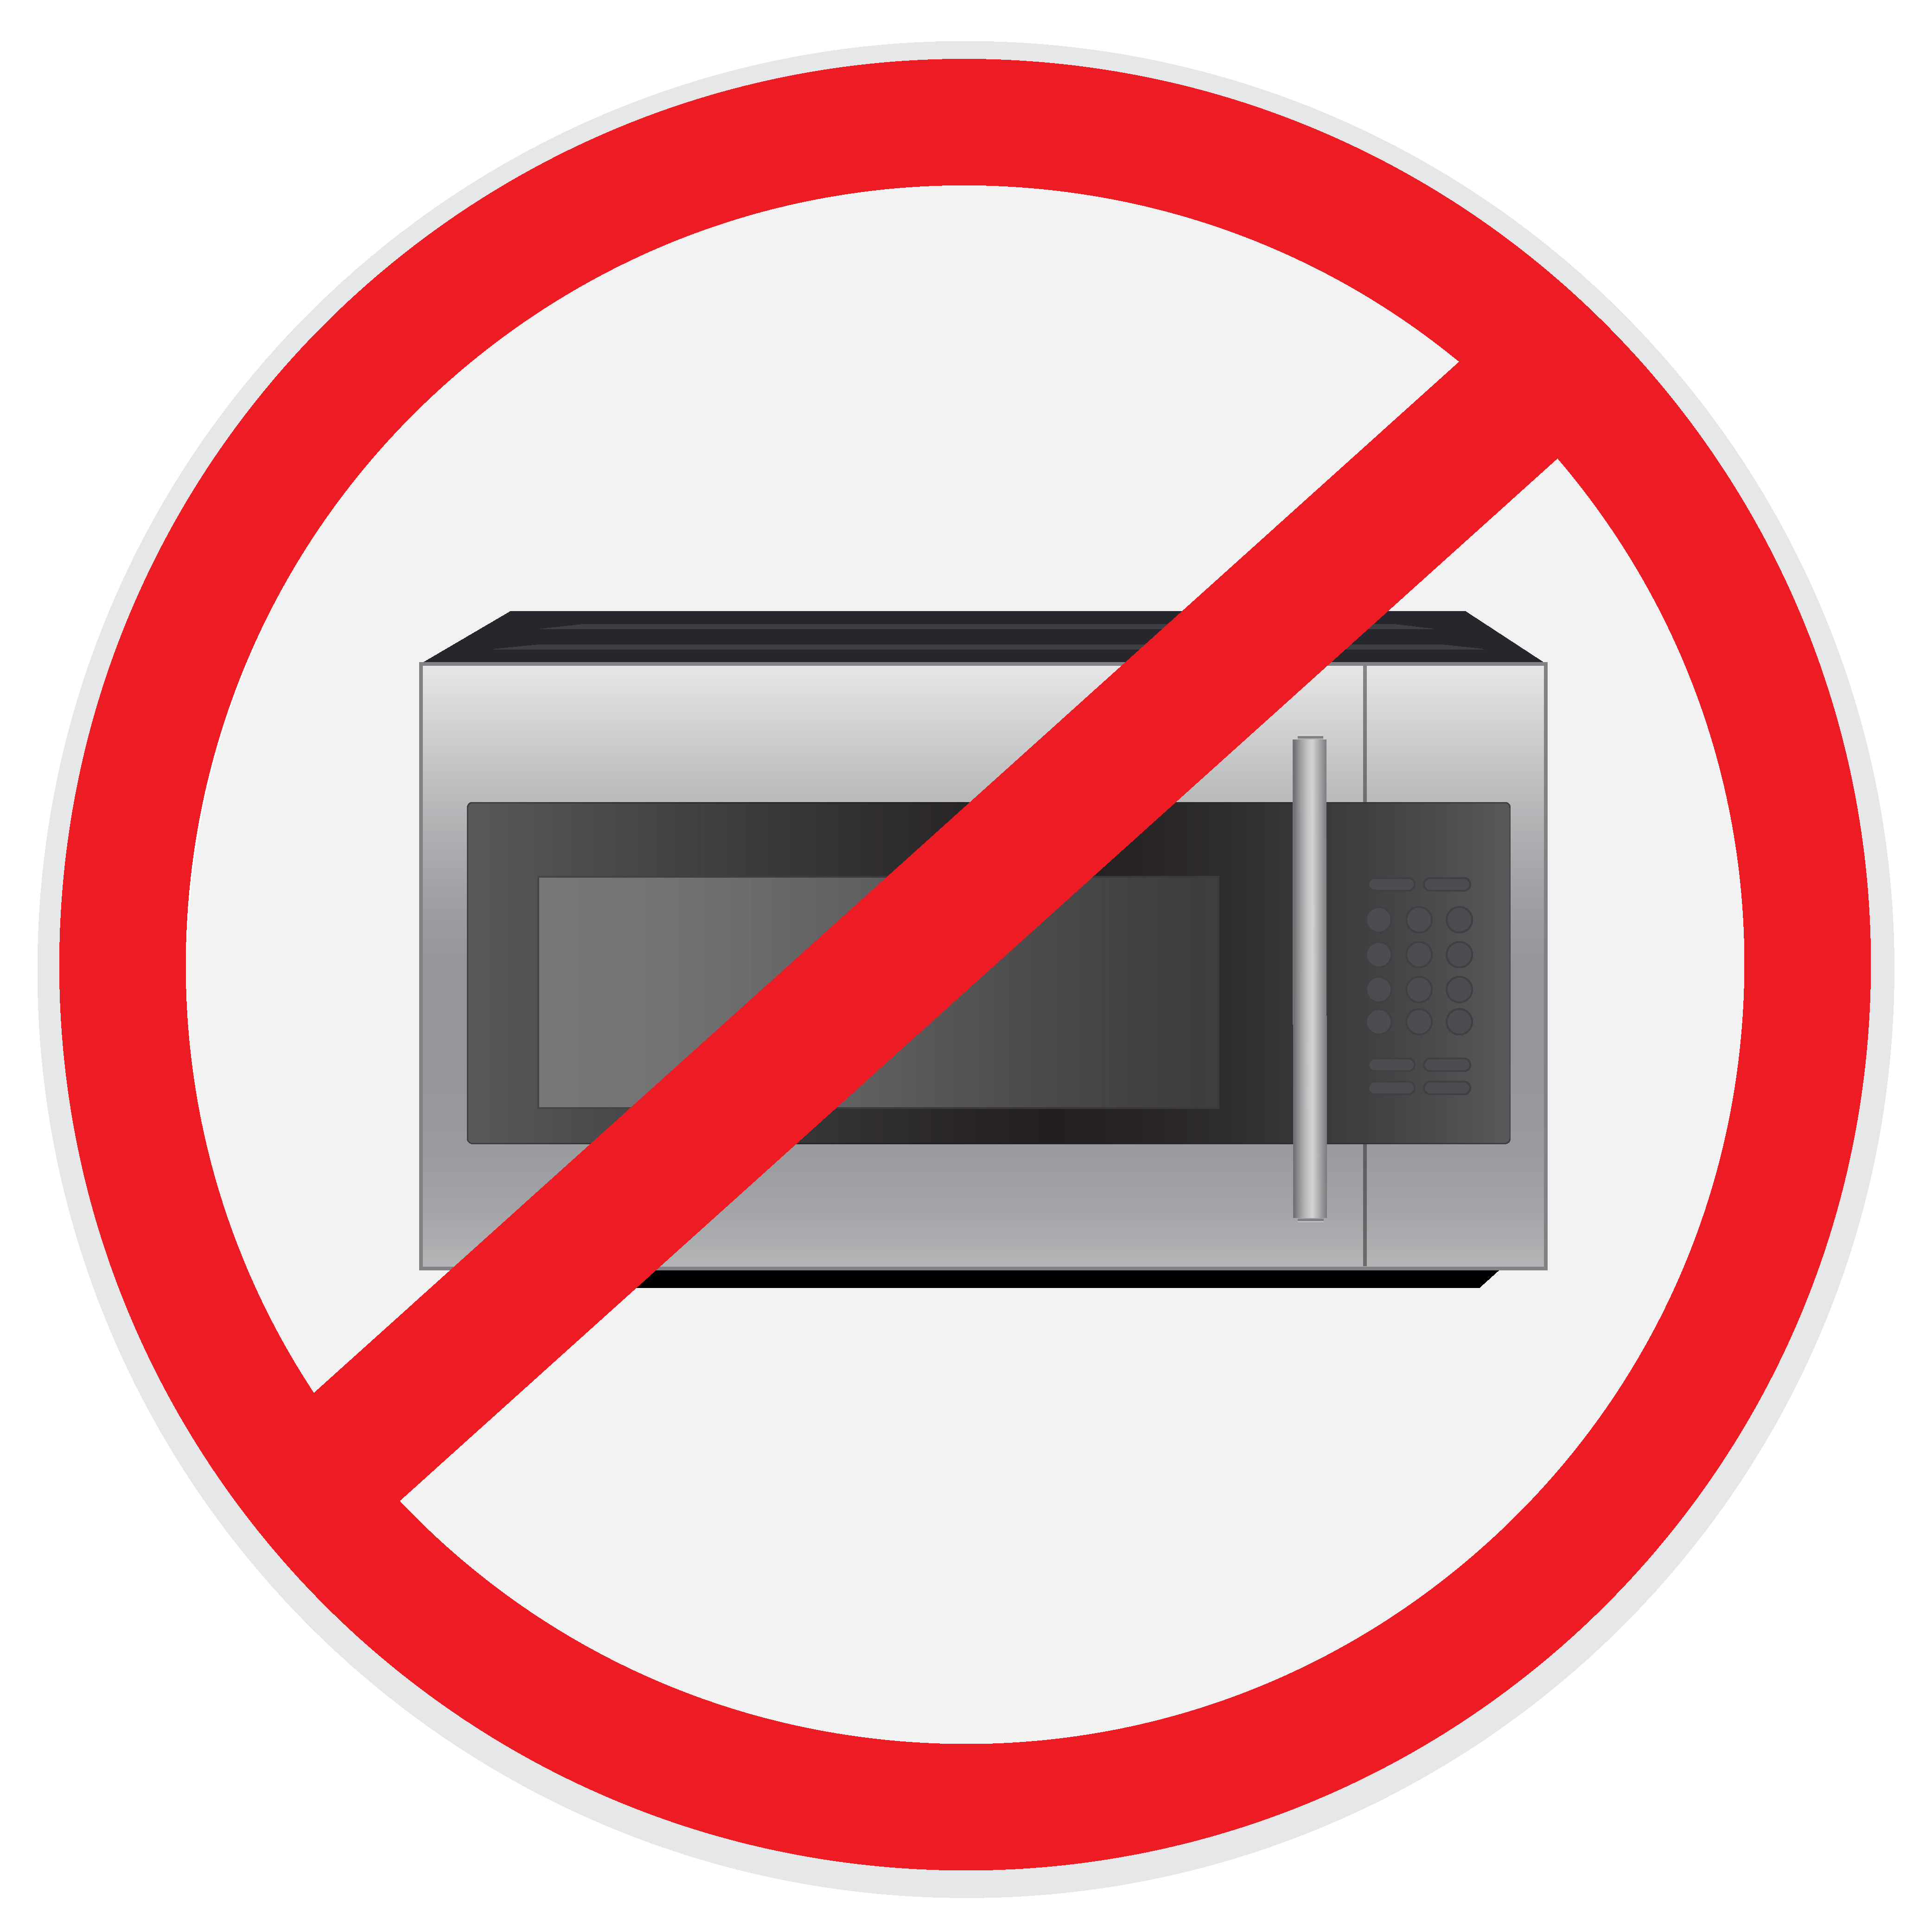 Microwaves = dangerous. If you or a loved one has cancer, please call us for help: 480-834-5414